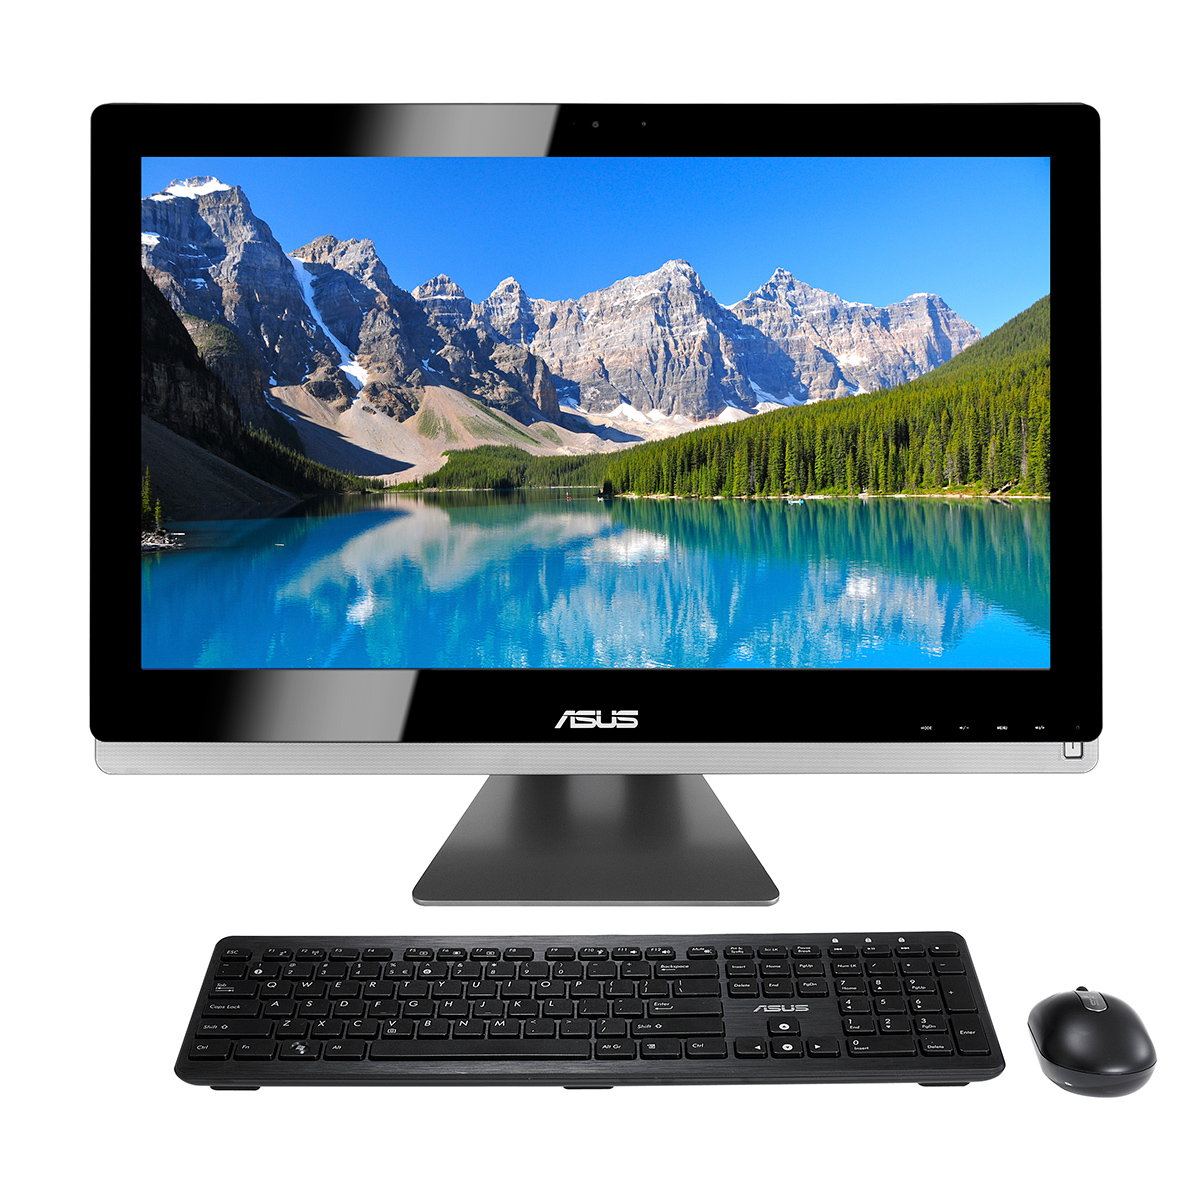 asus all in one pc et2702igkh b047k pc de bureau asus sur. Black Bedroom Furniture Sets. Home Design Ideas